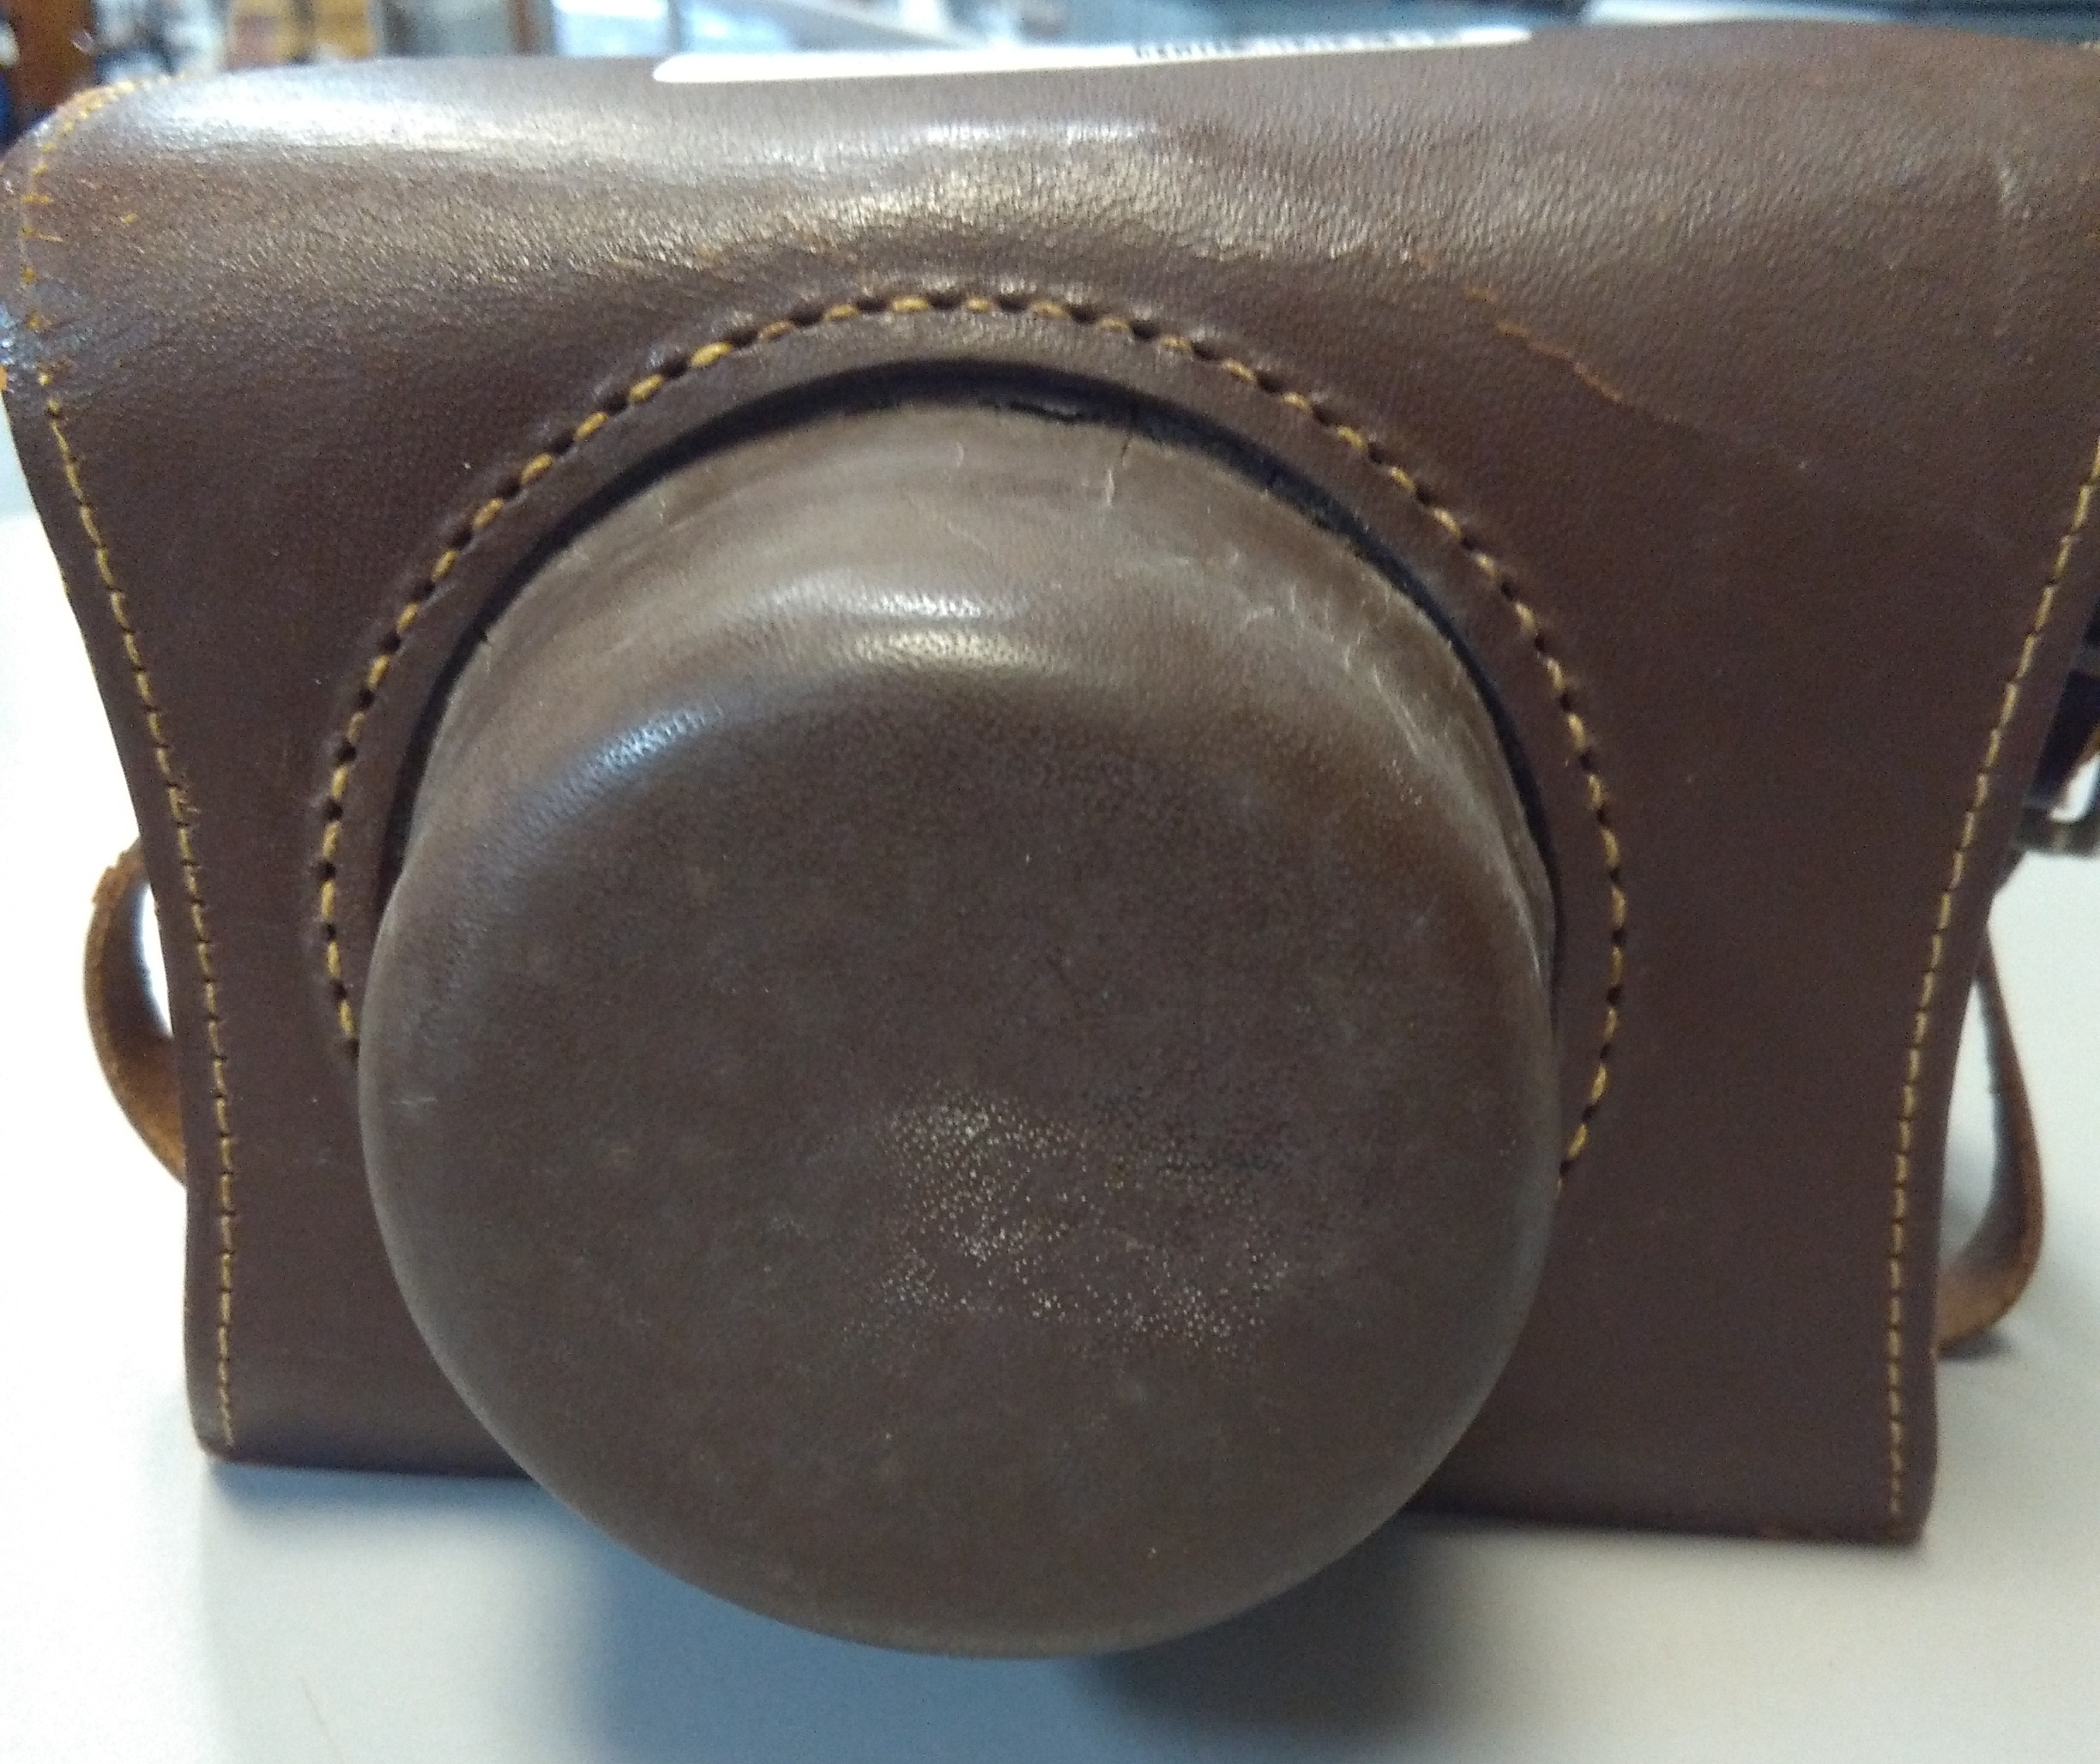 ANSCO PIONEER 35 MM CAMERA IN BROWN LEATHER CASE